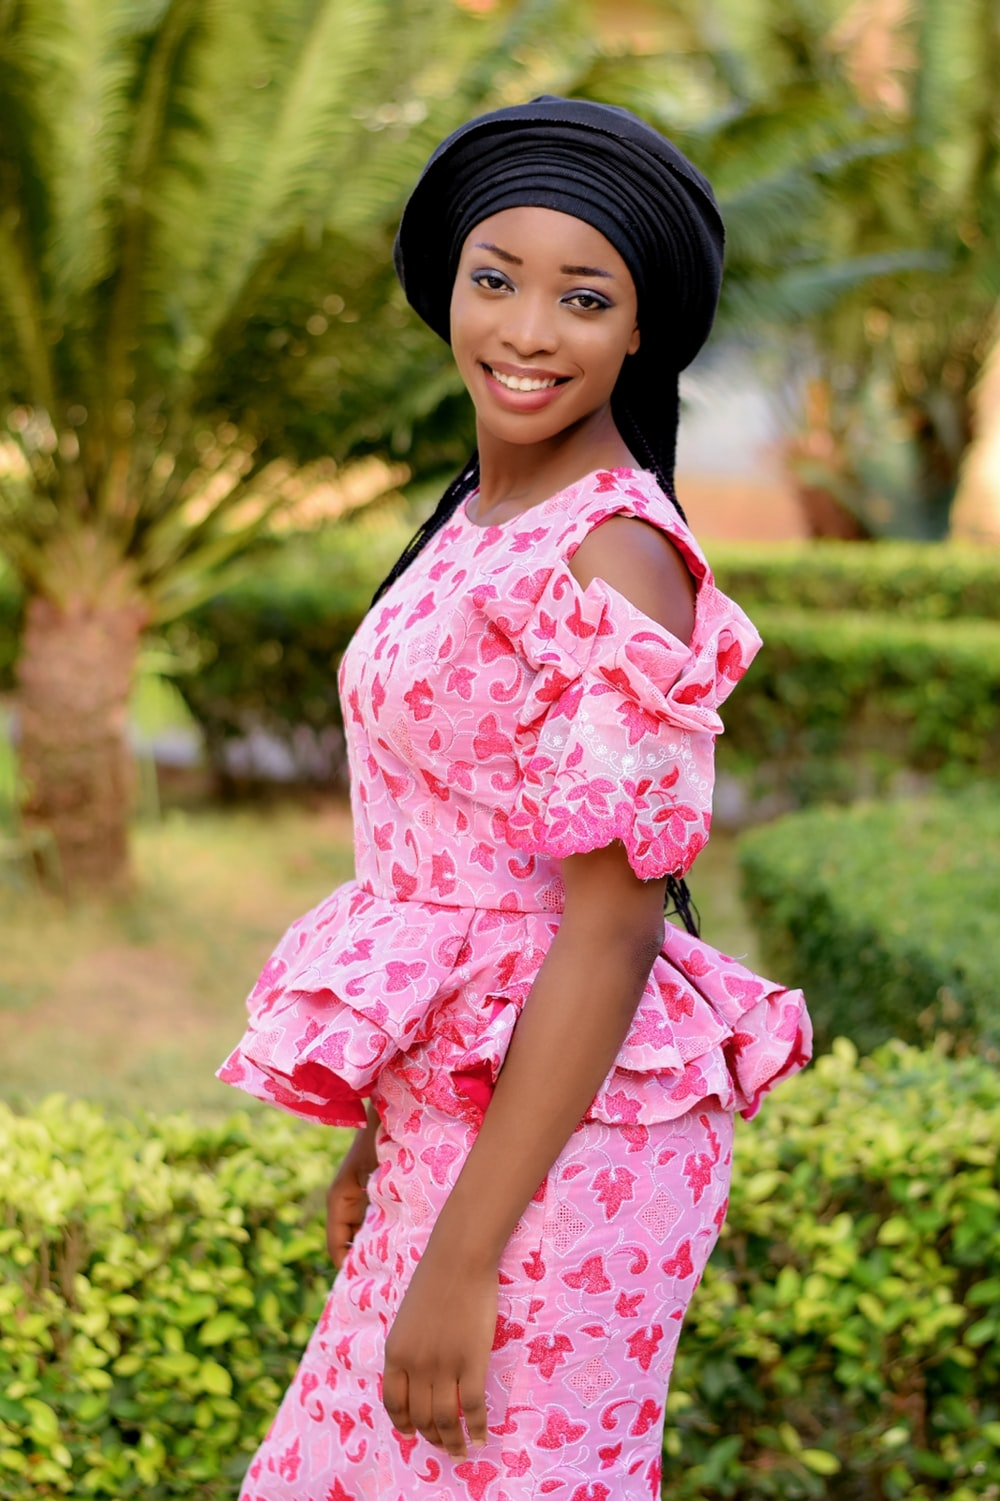 girl in pink and white floral dress standing on green grass field during daytime